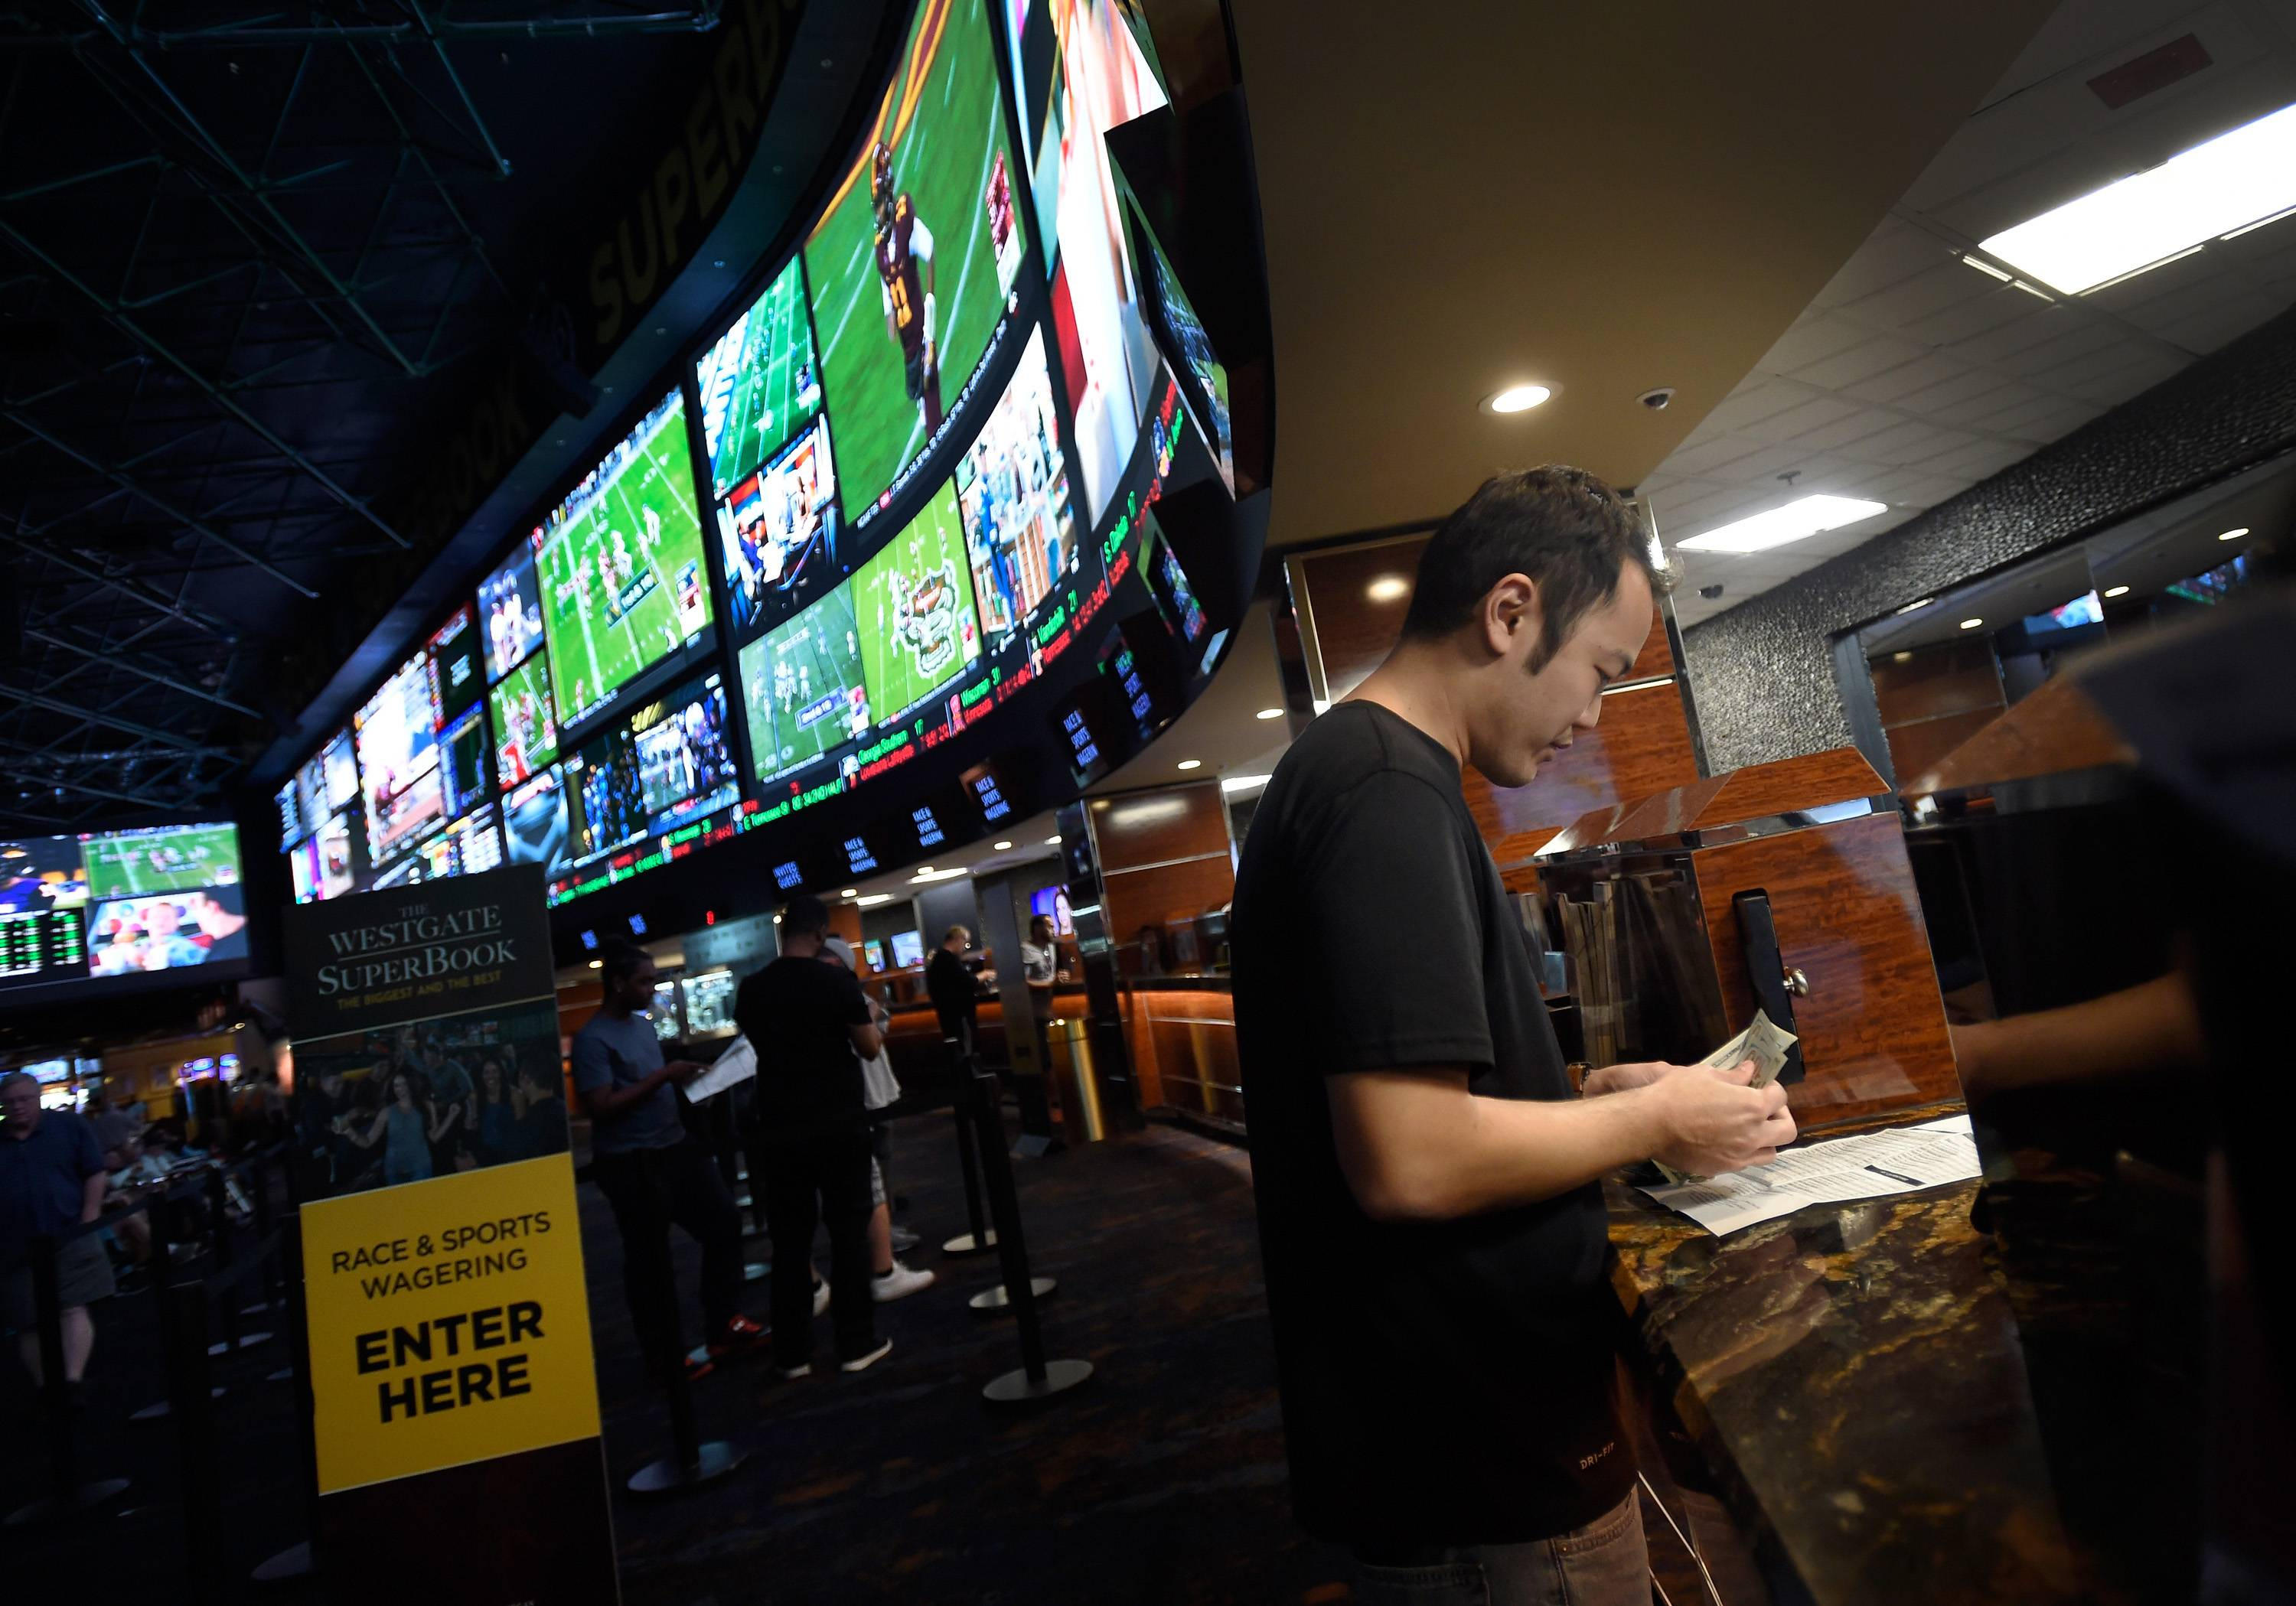 Efforts to legalize sports betting in Illinois will accelerate as a result of a U.S. Supreme Court decision announced Monday opening the door to such action, the state senator who heads the chamber's gaming committee said. Here, customer makes a sports bet at the Race & Sports SuperBook in Las Vegas last year.